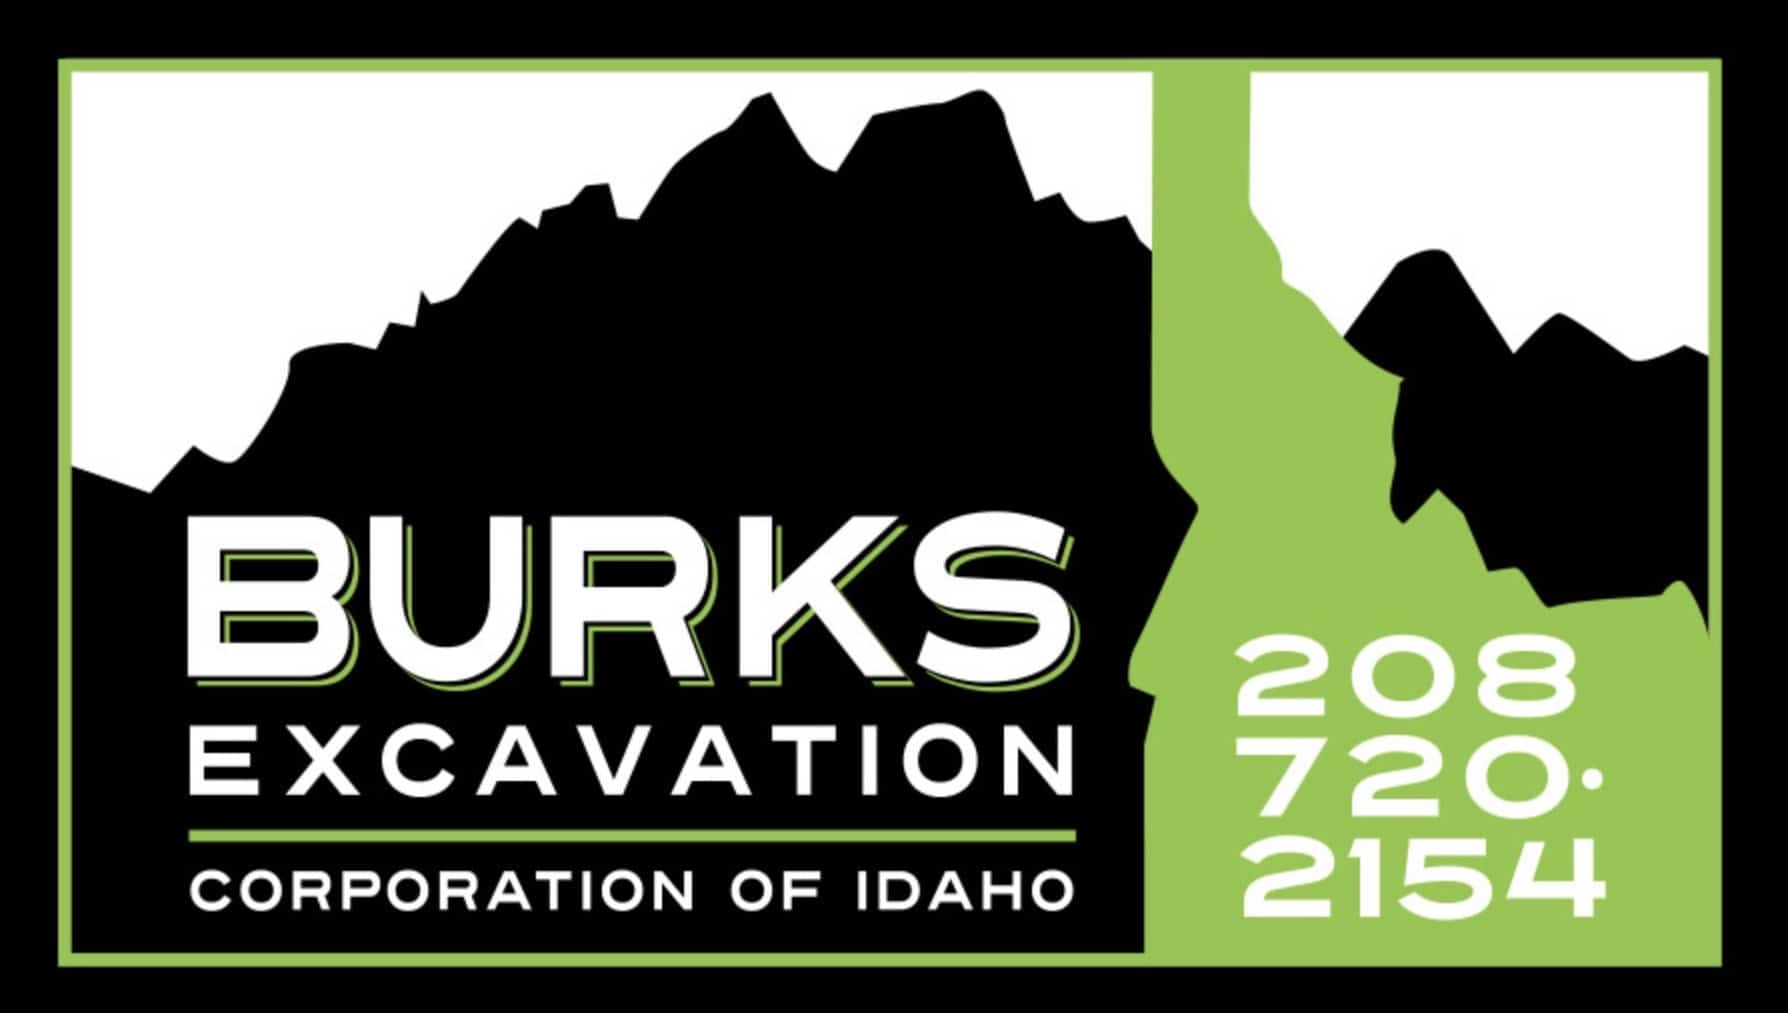 burks-excavation-sun-valley-logo